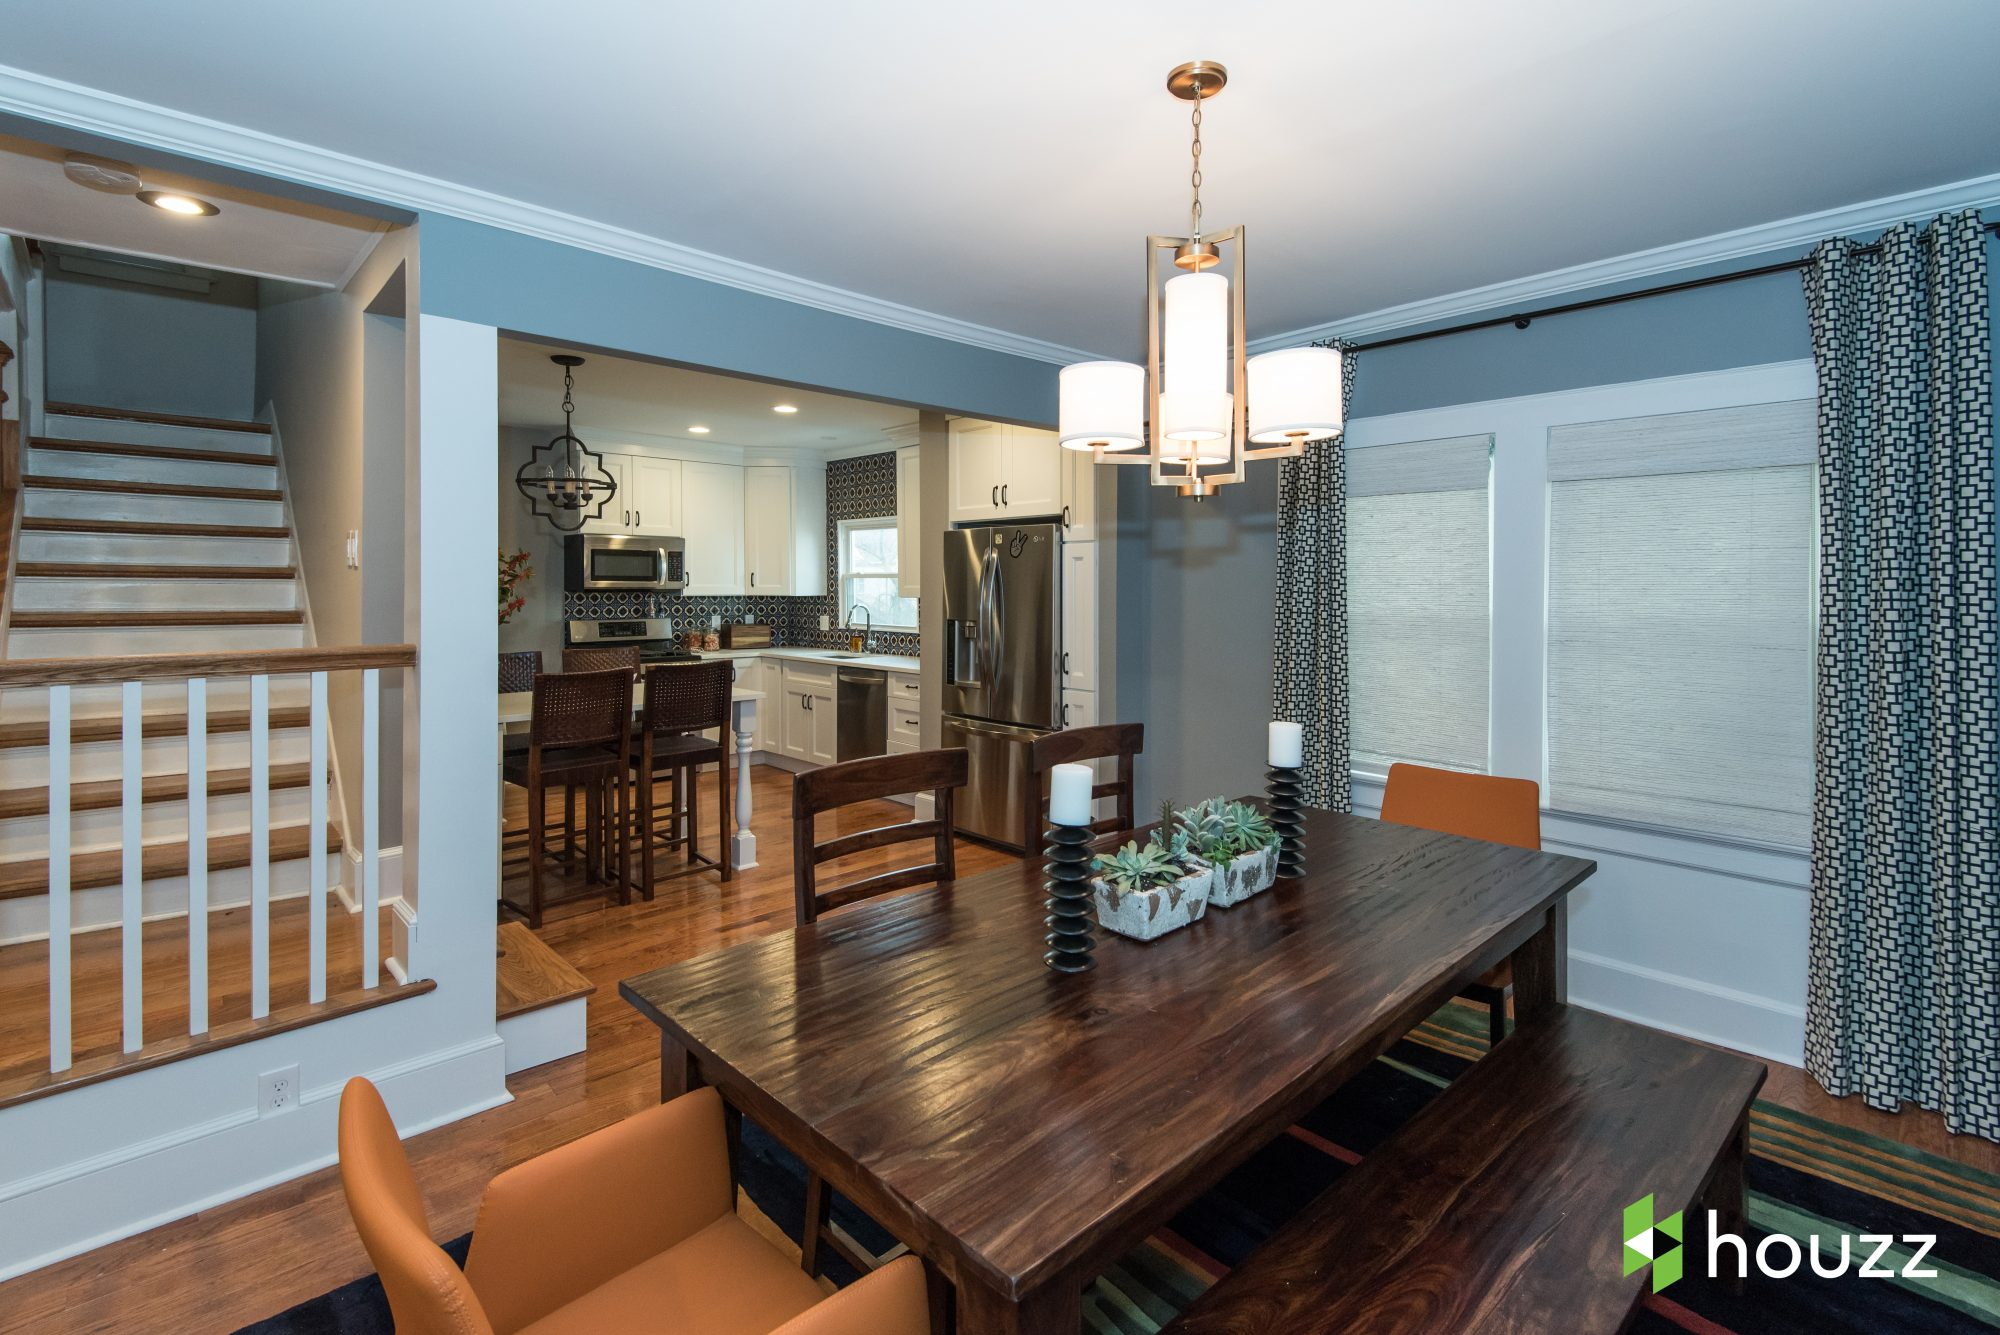 Opening up the walls between the living room, dining room, kitchen and stairwell created a more functional and beautiful space.